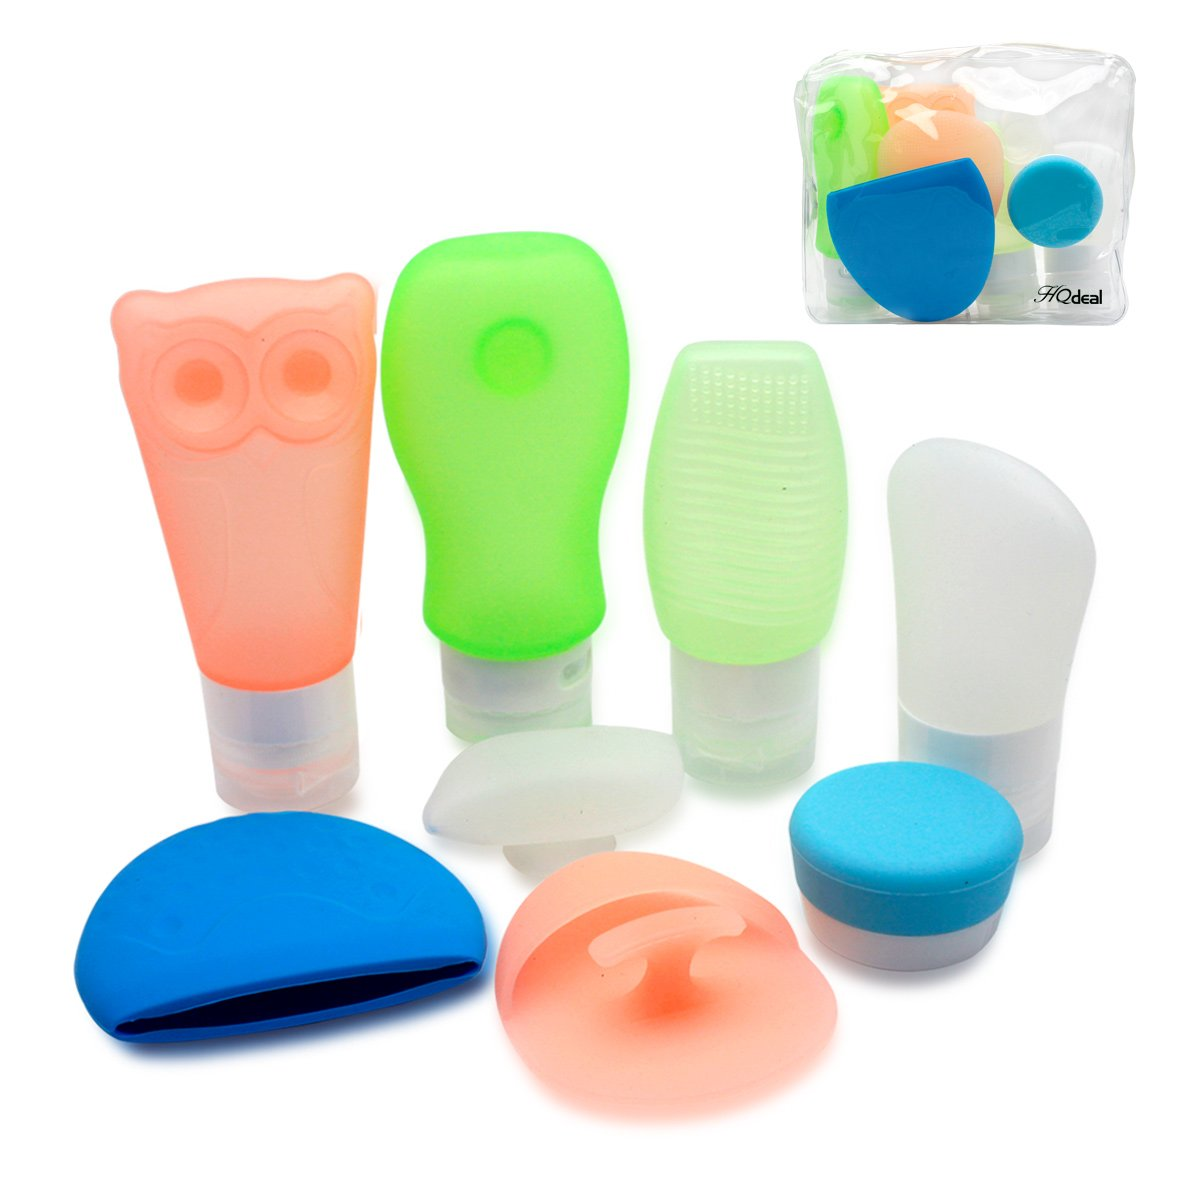 HQdeal Silicon Travel Bottles Set Air Travel Bottles Bath Refillable Containers with Toiletry Bag for Liquid Cosmetics Makeup Pack of 9